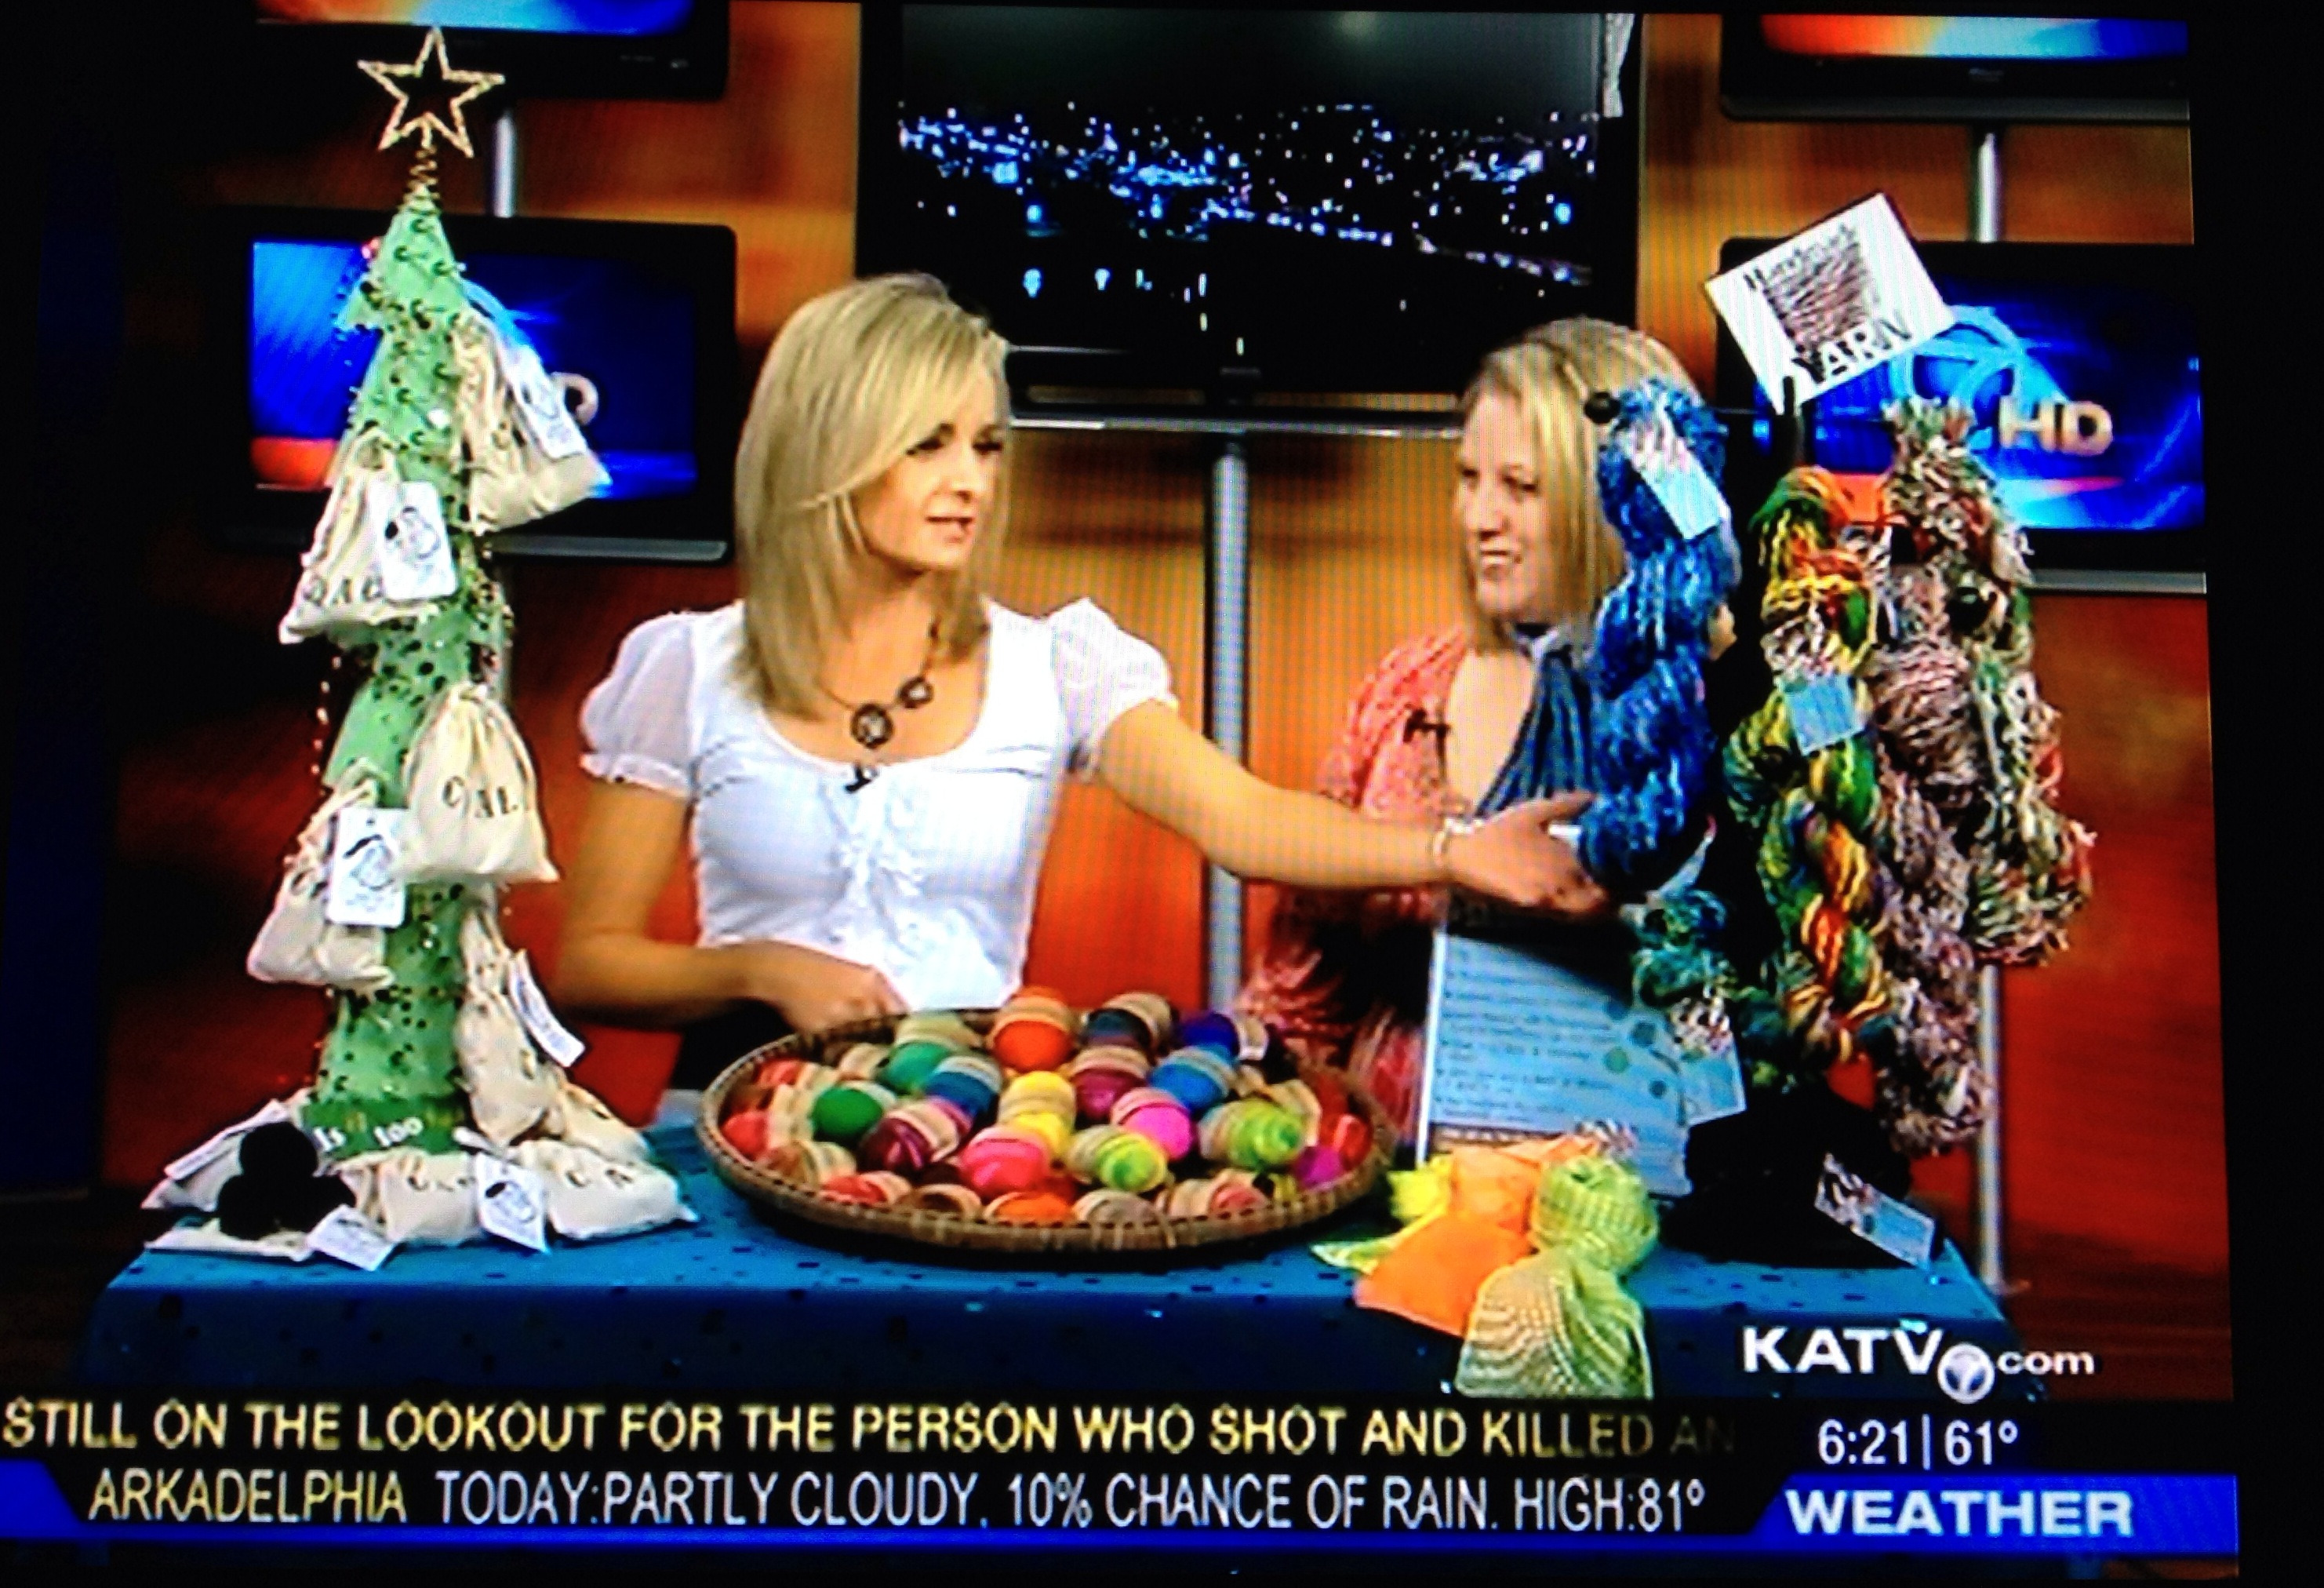 Cyndi Minister, owner of The Twisted Purl, on tv with products